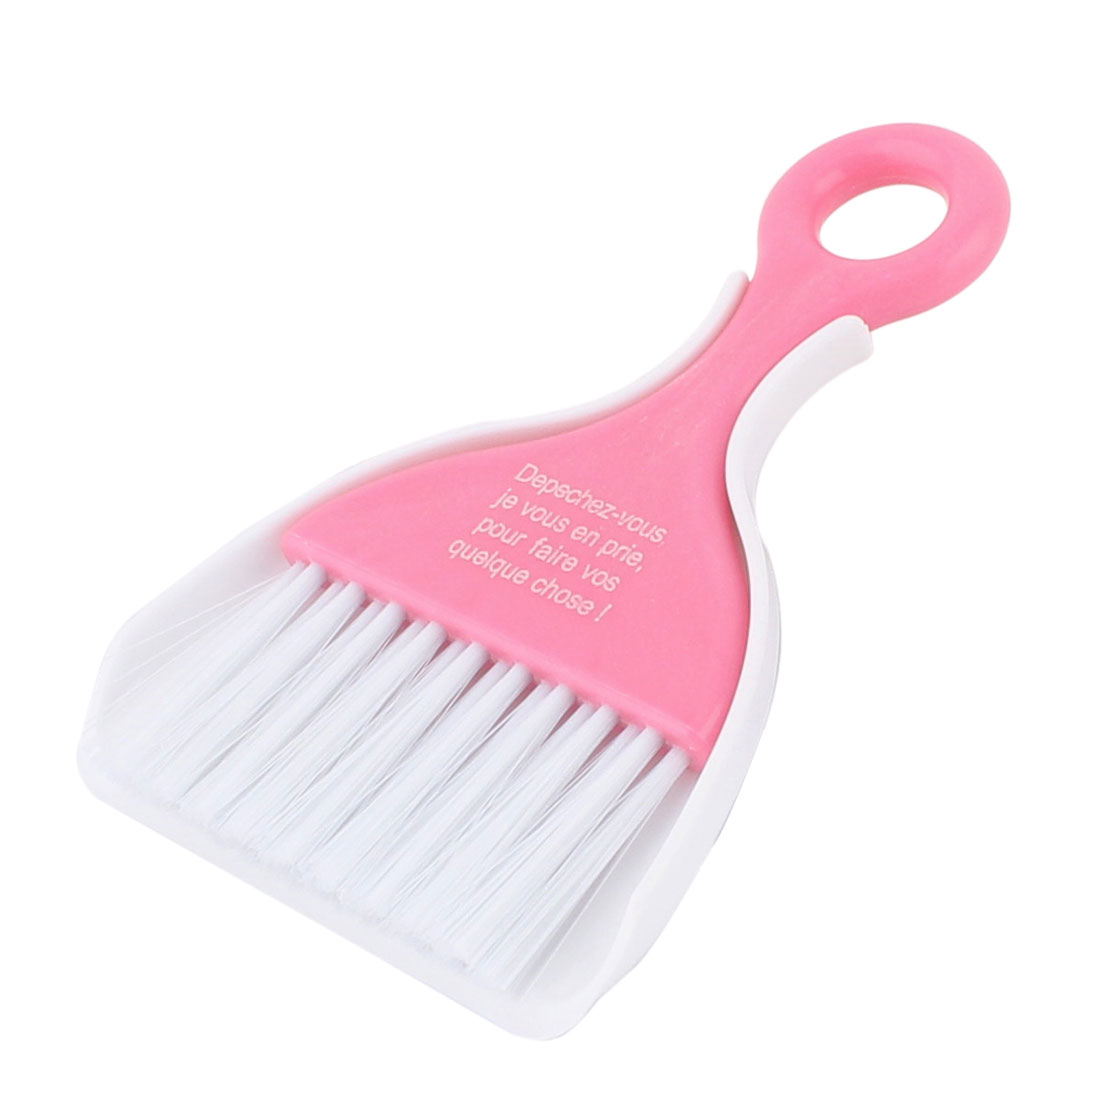 Car Dashboard Window Keyboard Air Outlet Vent Cleaning Sweeping Brush Dustpan Pink 2 in 1